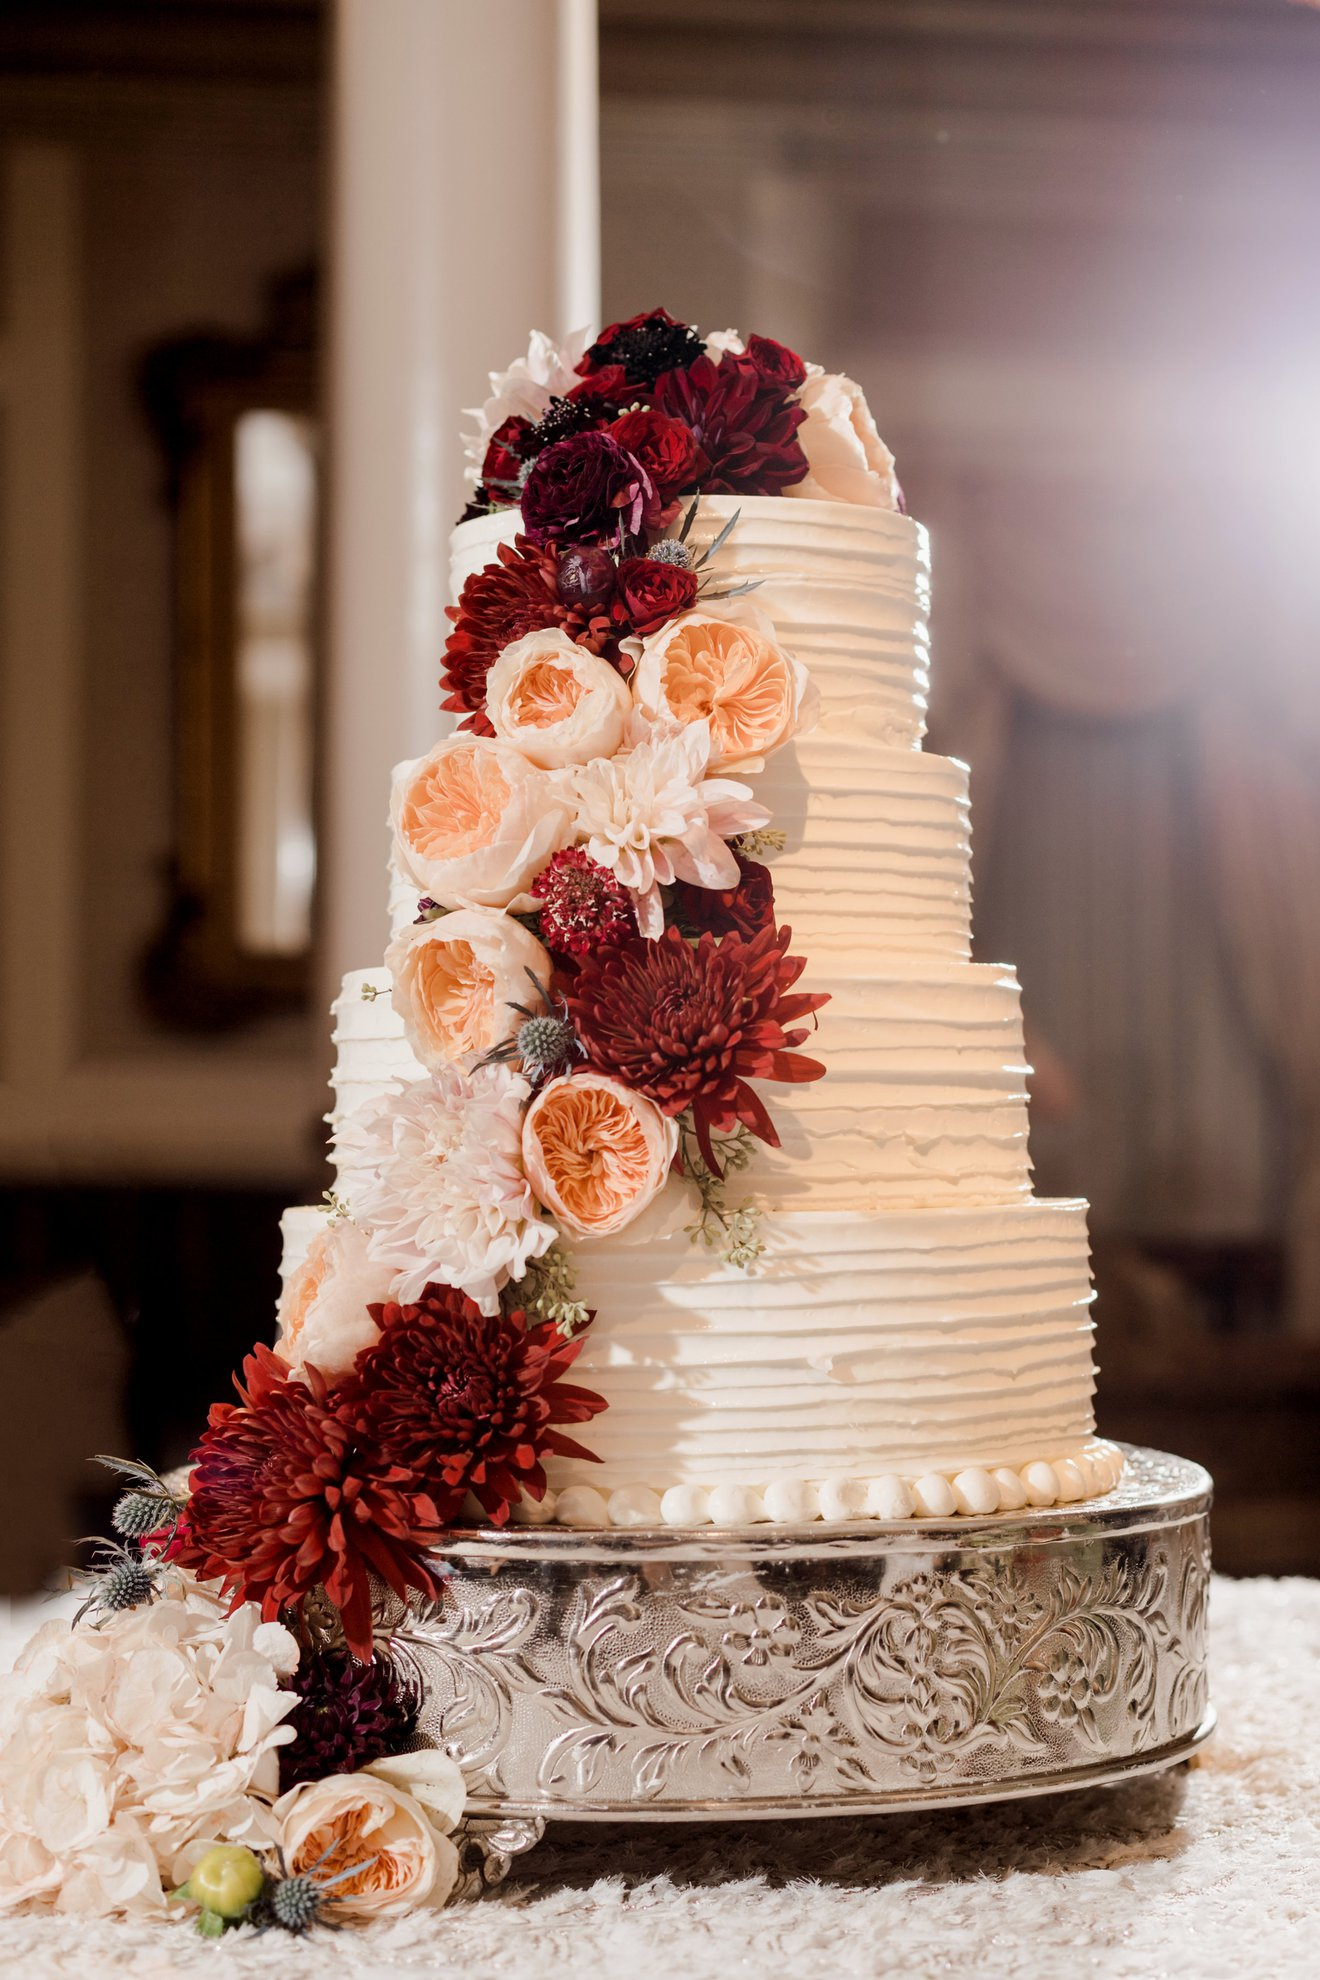 The Driskill Wedding Cake